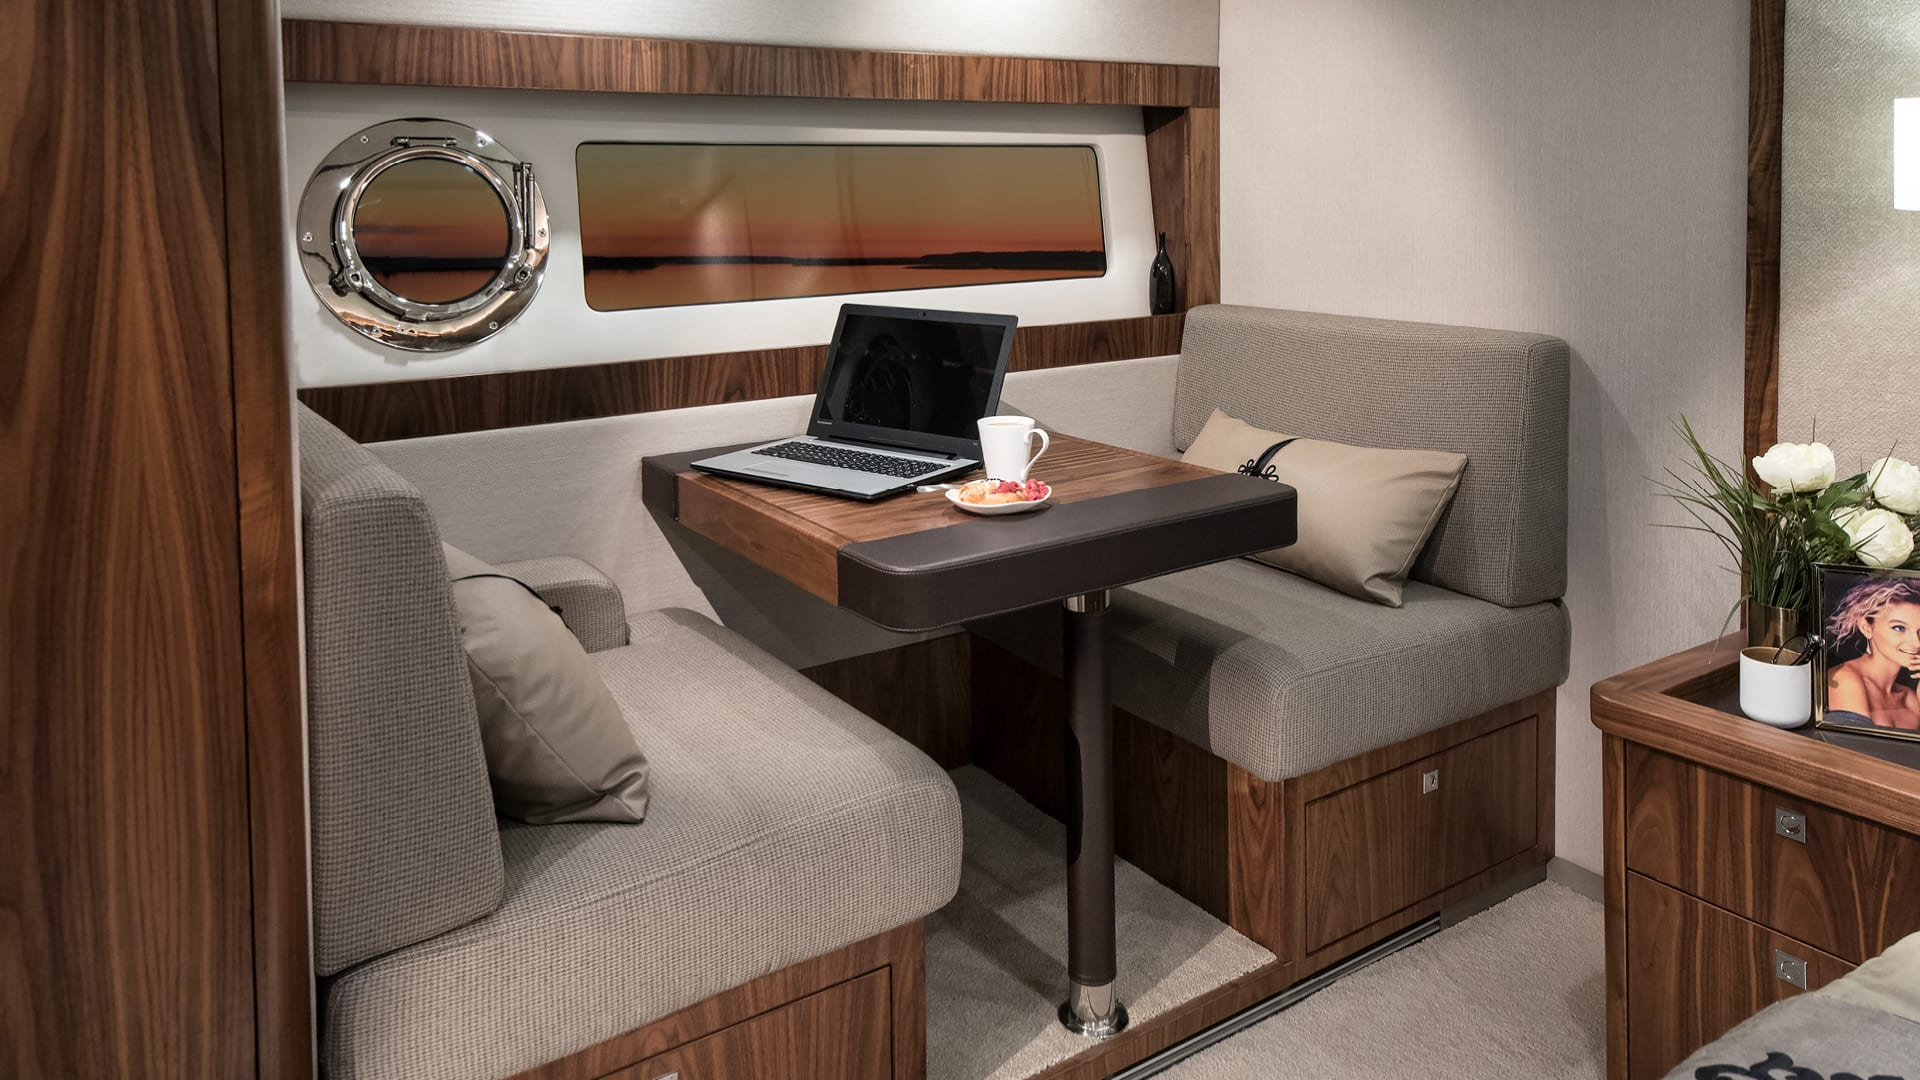 Riviera 68 Sports Motor Yacht Presidential Stateroom Makeup Bureau – Satin Walnut Timber Finish